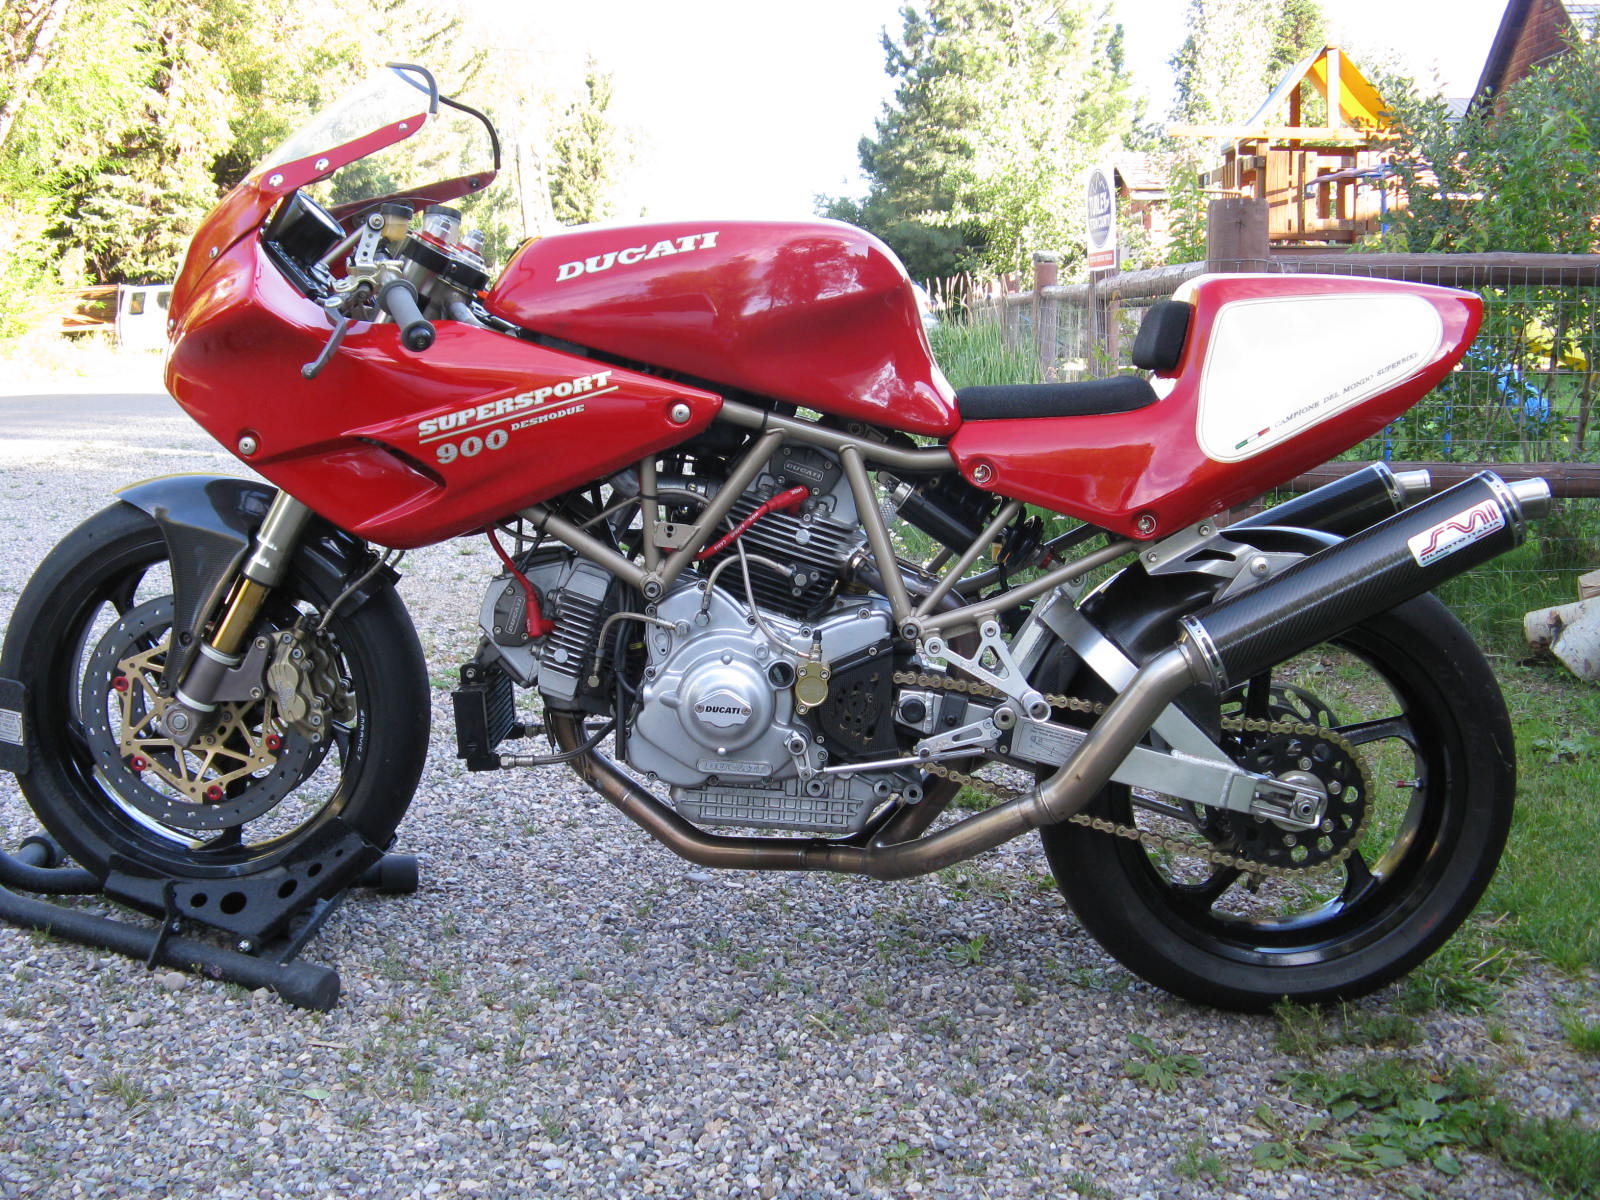 Ducati 900 SS 1997 images #79025